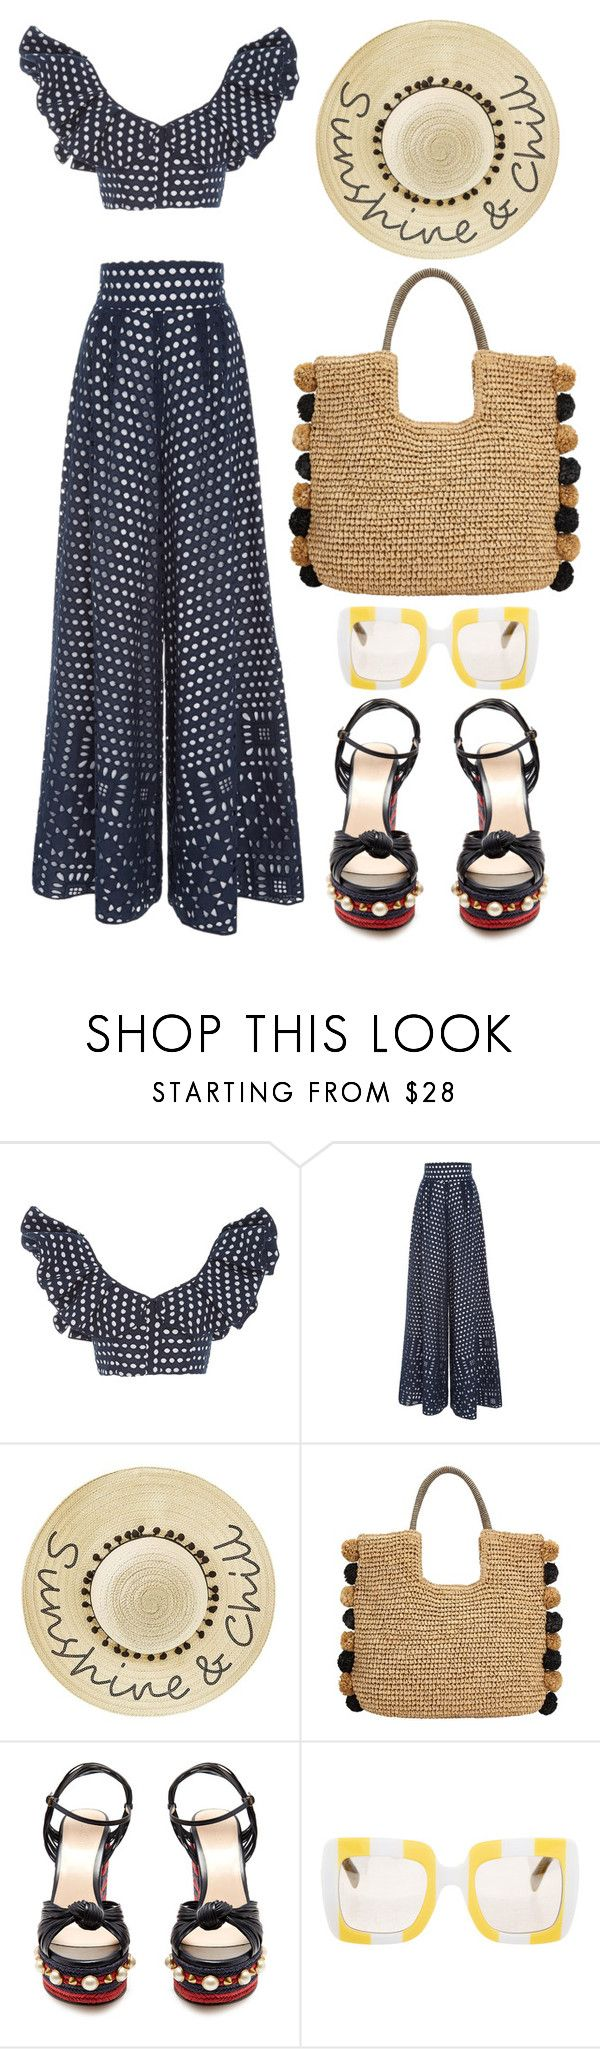 """Johanna Ortiz"" by thestyleartisan on Polyvore featuring Johanna Ortiz, Betsey Johnson, John Lewis, Gucci, Dolce&Gabbana and embellishedshoes"